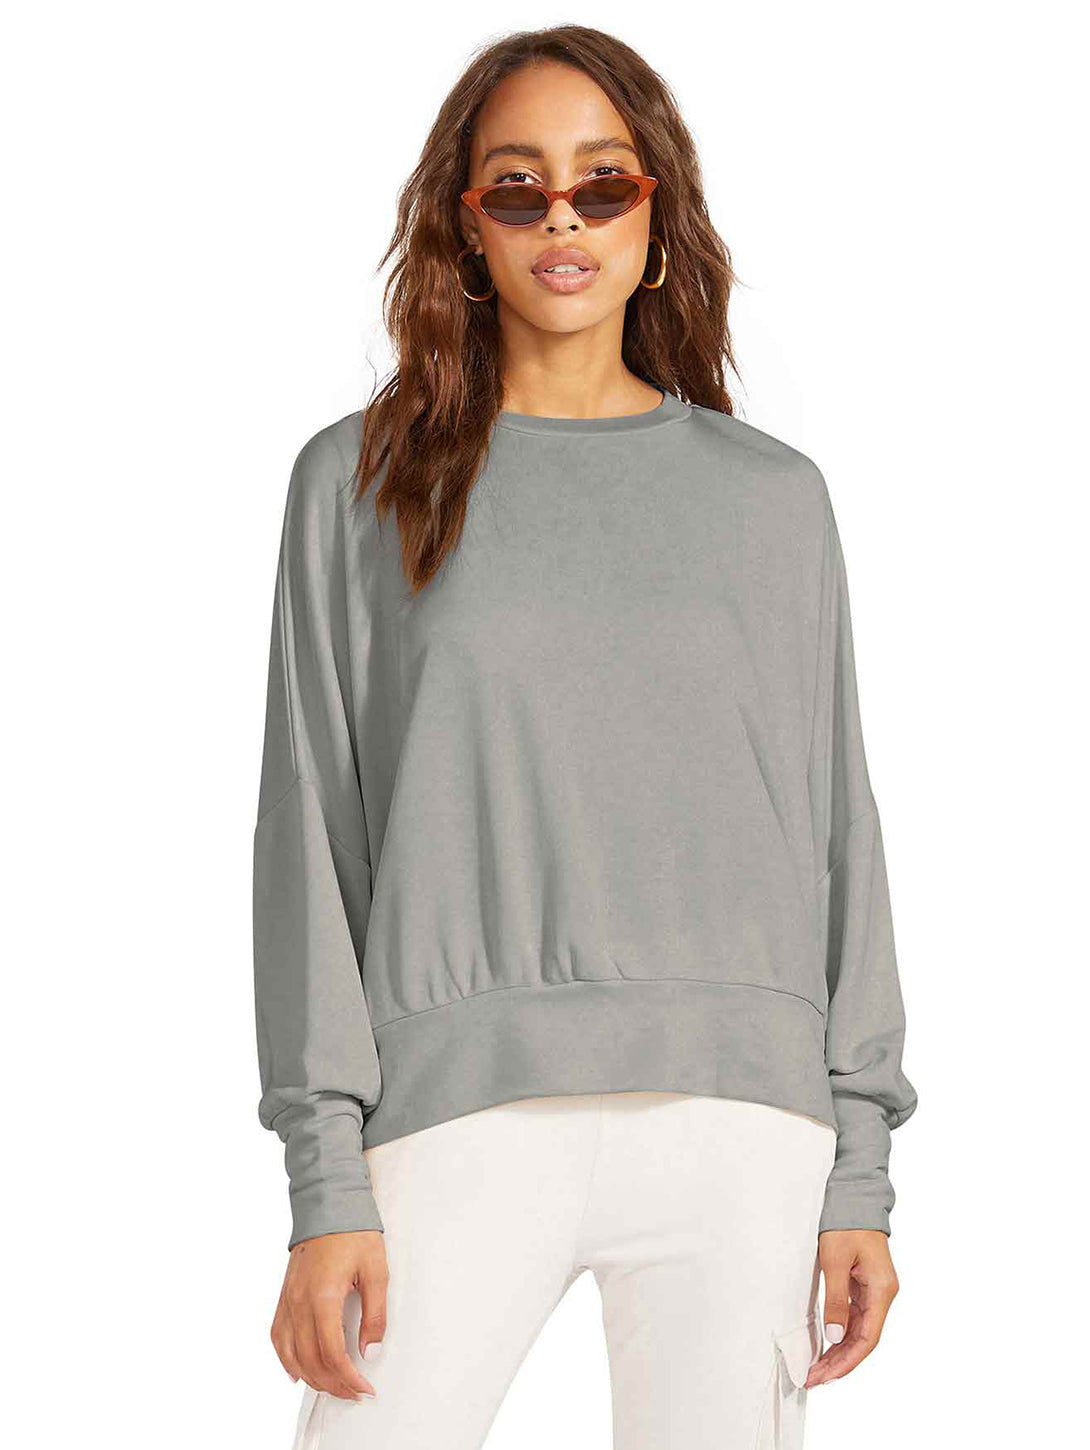 Big Idea Oversize Sweatshirt-BB DAKOTA-Over the Rainbow